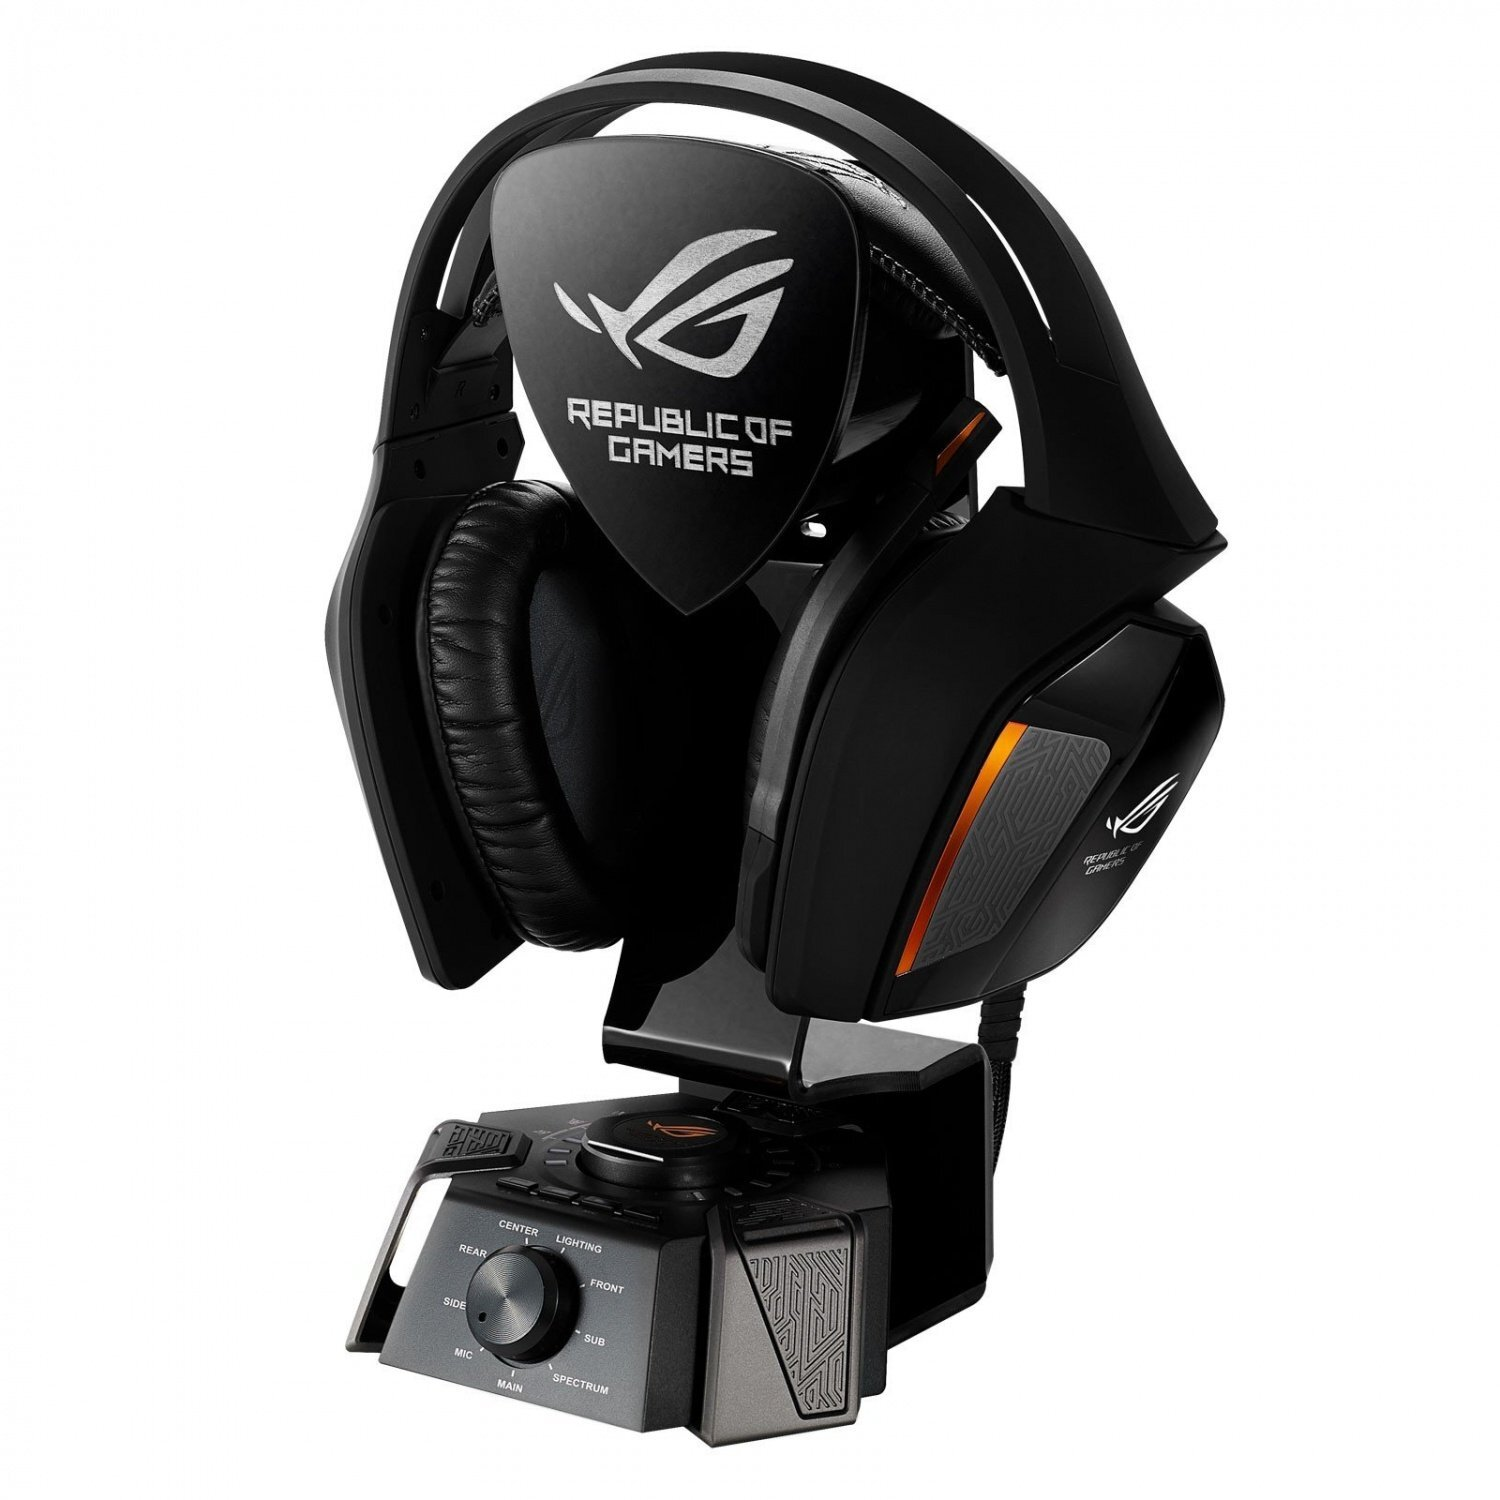 Гарнітура ігрова ASUS ROG Centurion True 7.1 Surround Gaming Headset